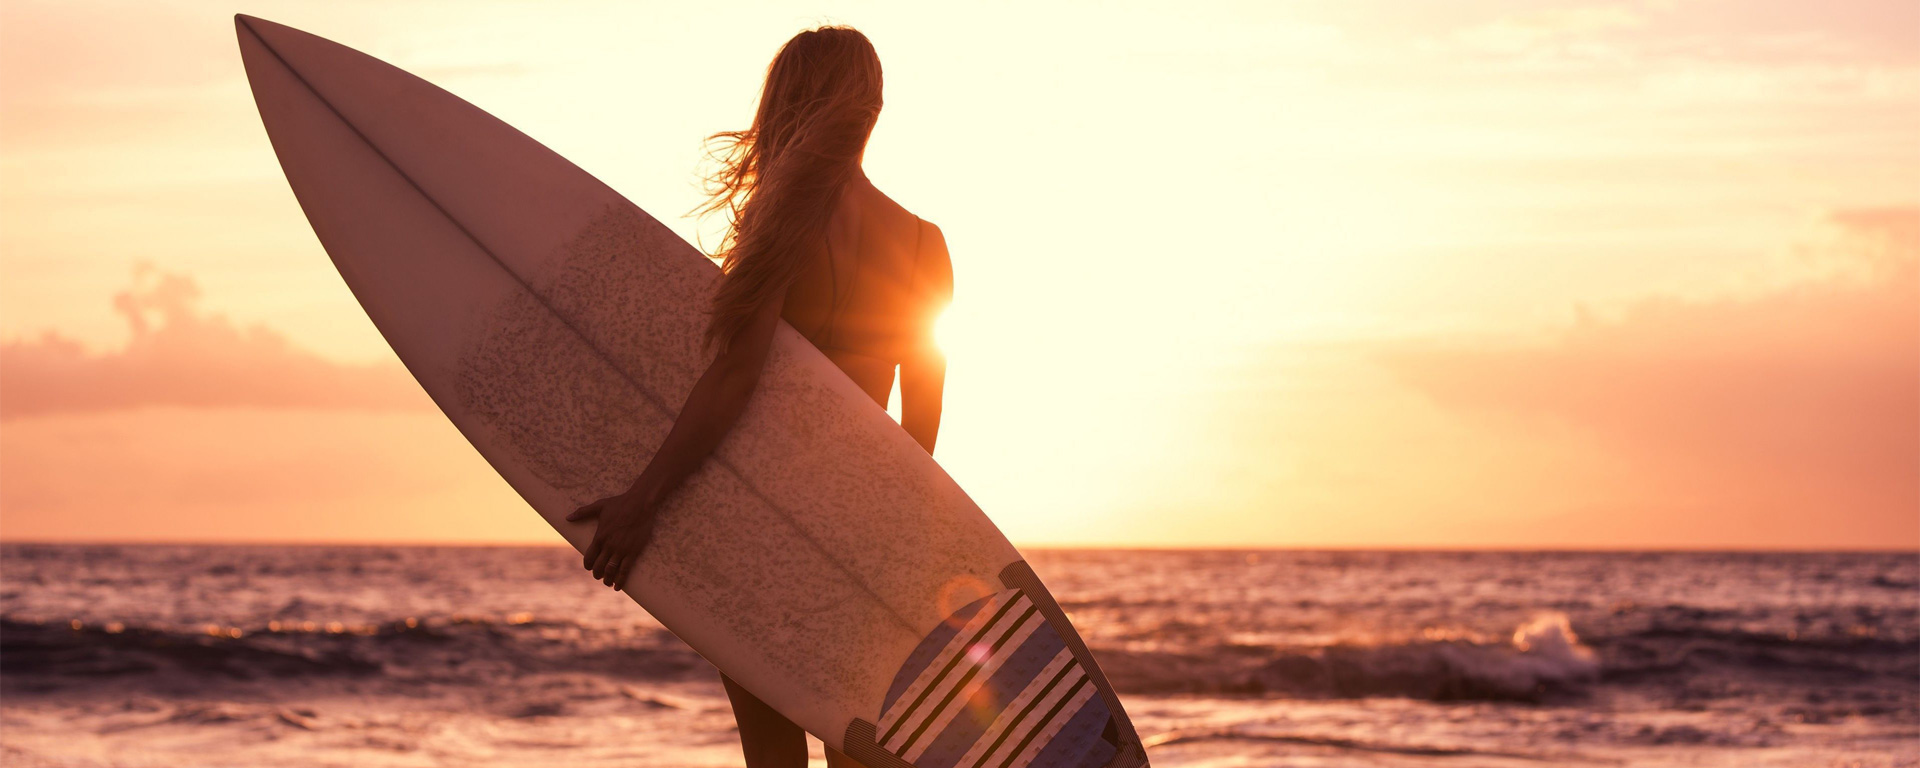 Surfer Girl Varazze Bed and Breakfast Il Mago